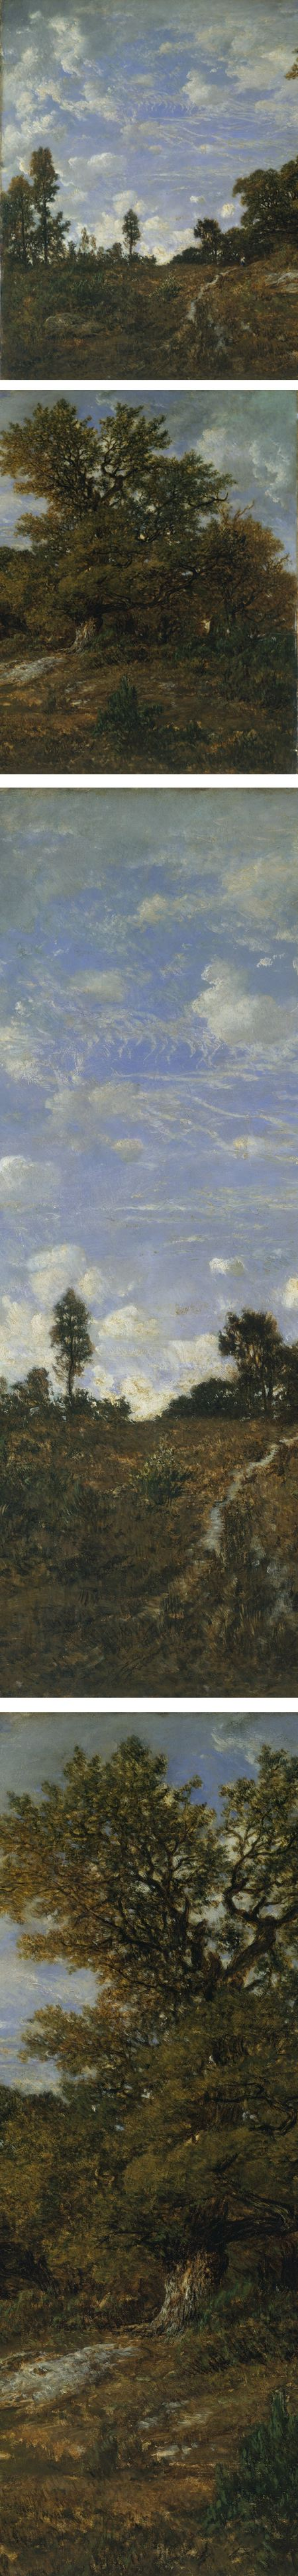 The Edge of the Woods at Monts-Girard, Fontainebleau Forest, Théodor Rousseau (details)